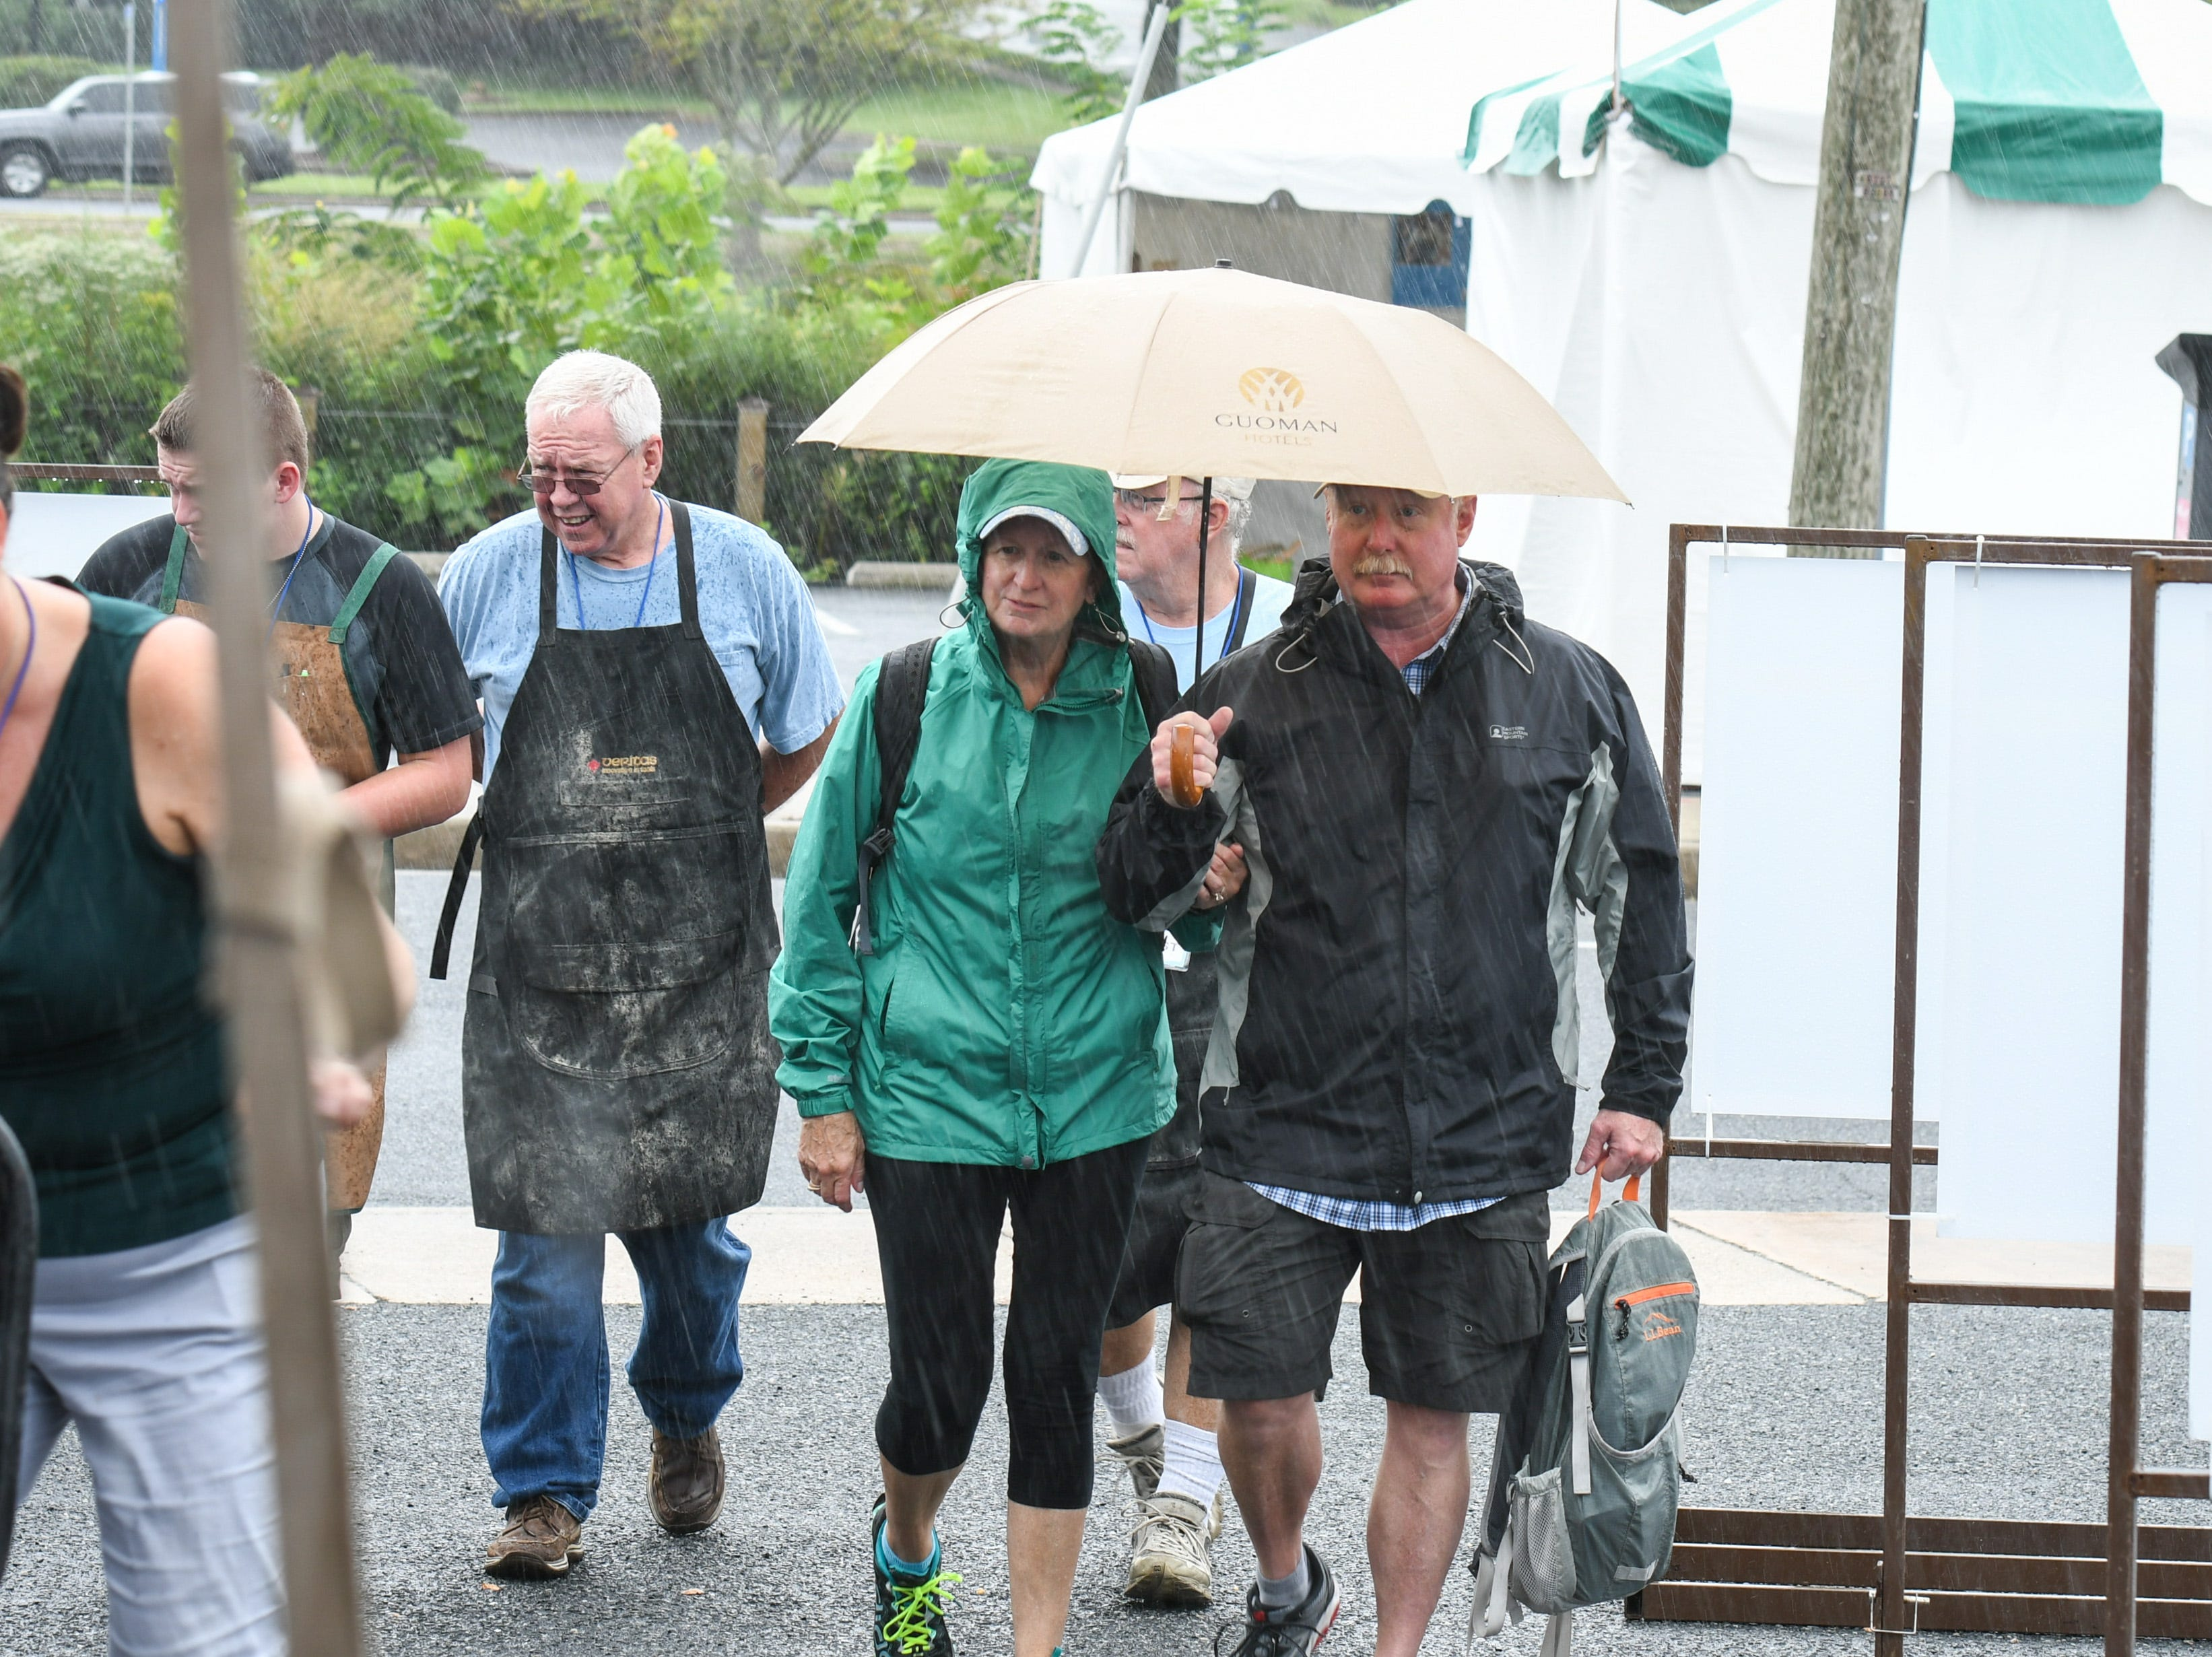 Rain didn't deter crowds at the National Folk Festival in Salisbury on Saturday, Sept. 8.